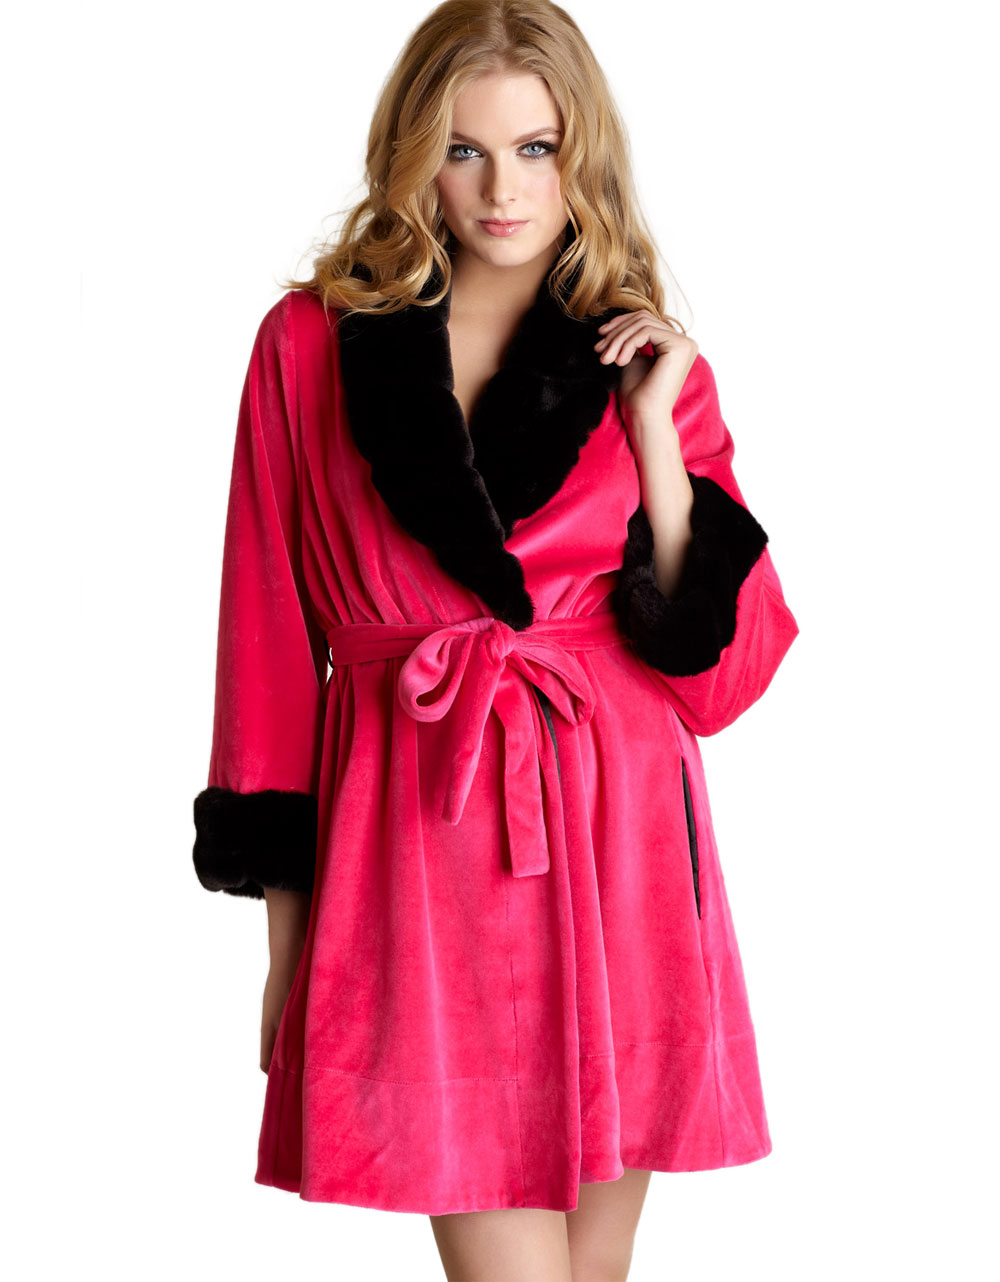 Betsey johnson velour robe with faux mink trim in pink for Robes de mariage de betsey johnson